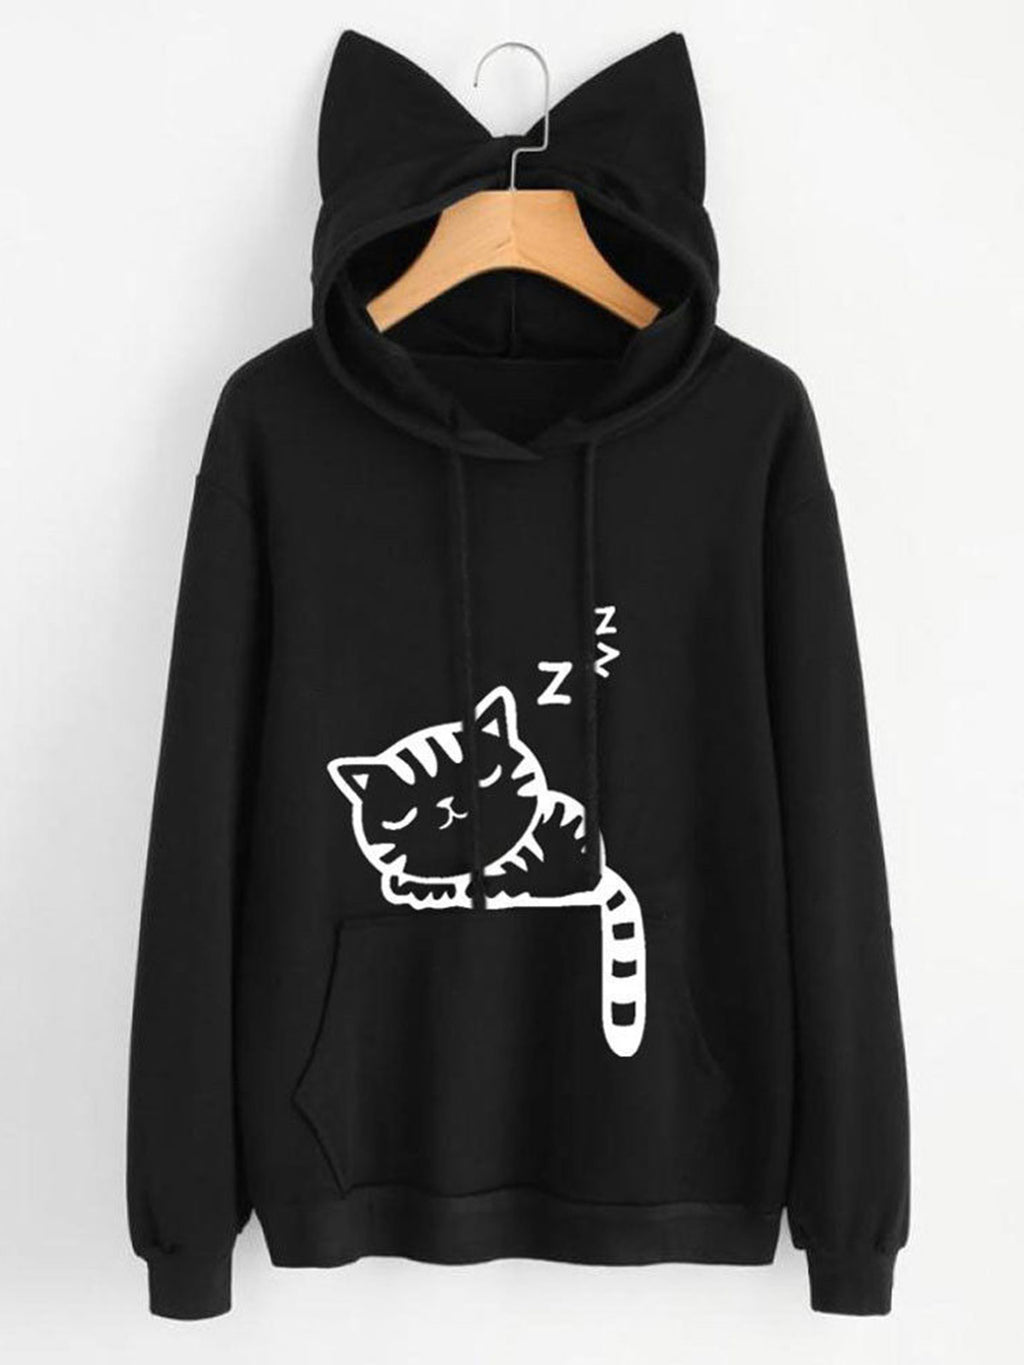 Cotton Casual Animal Hoodie Sweatshirt&hoodies